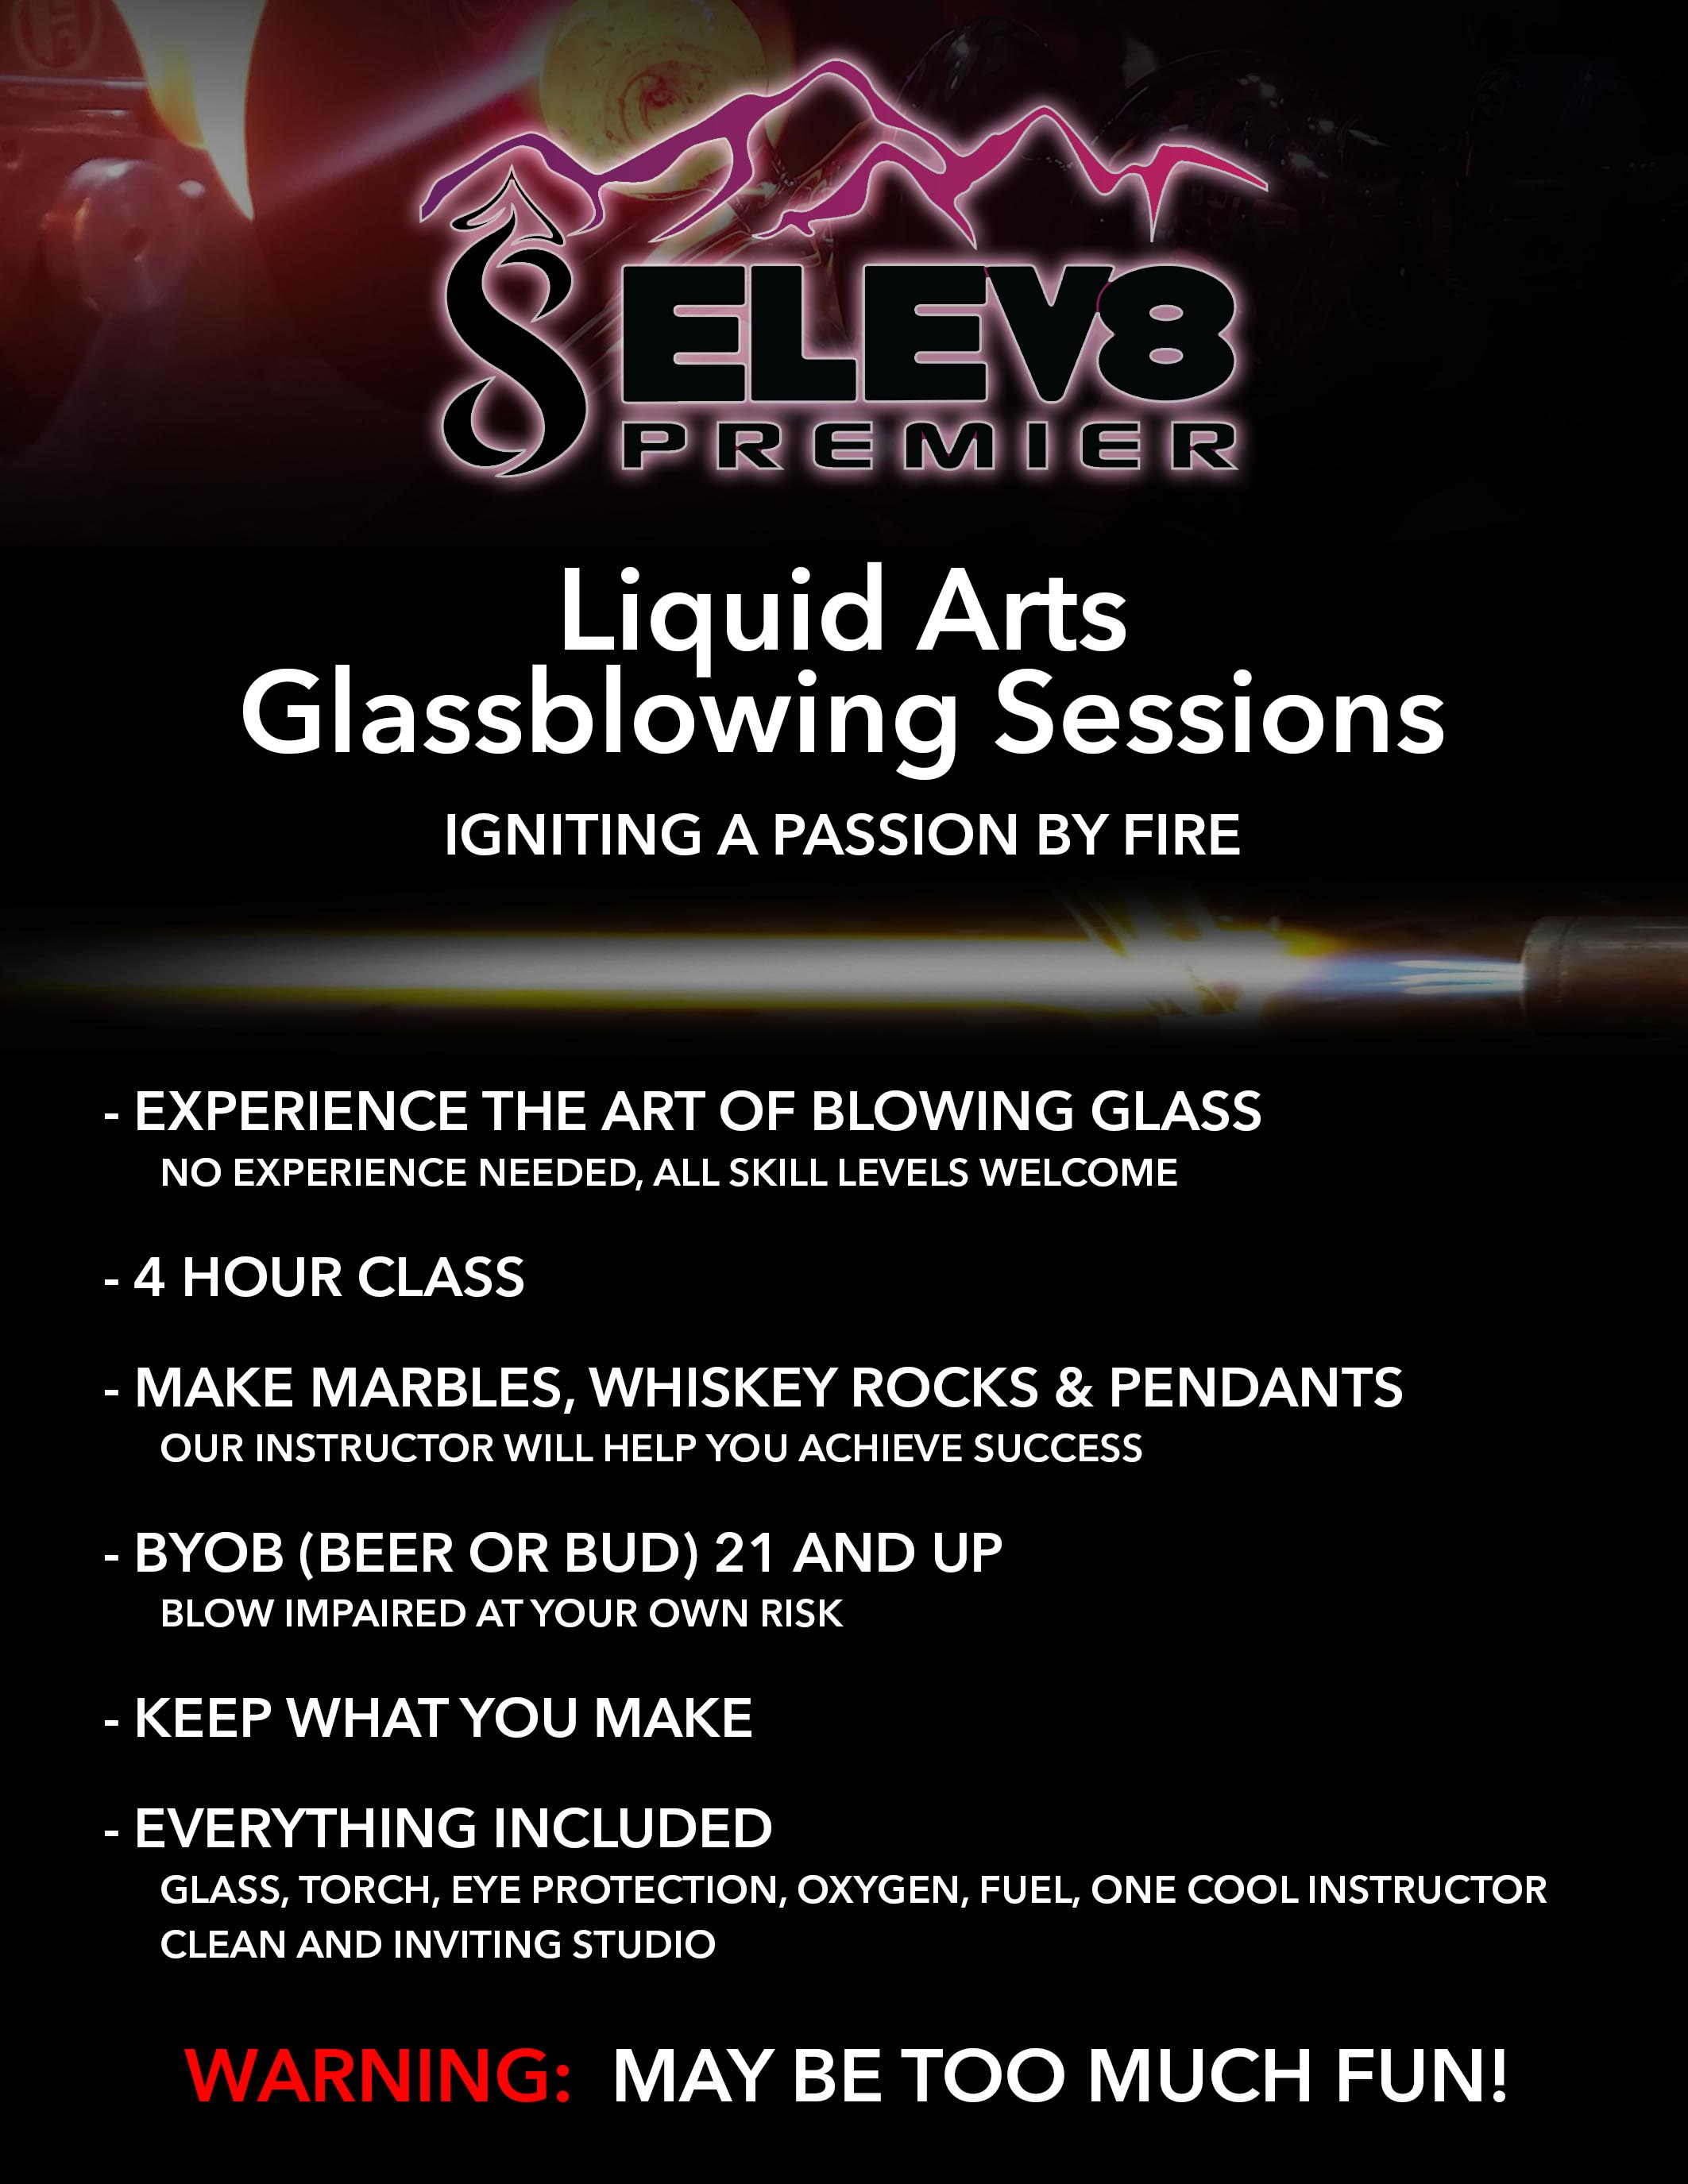 elev8-premier-liquid-arts-class-what-you-get3.jpg